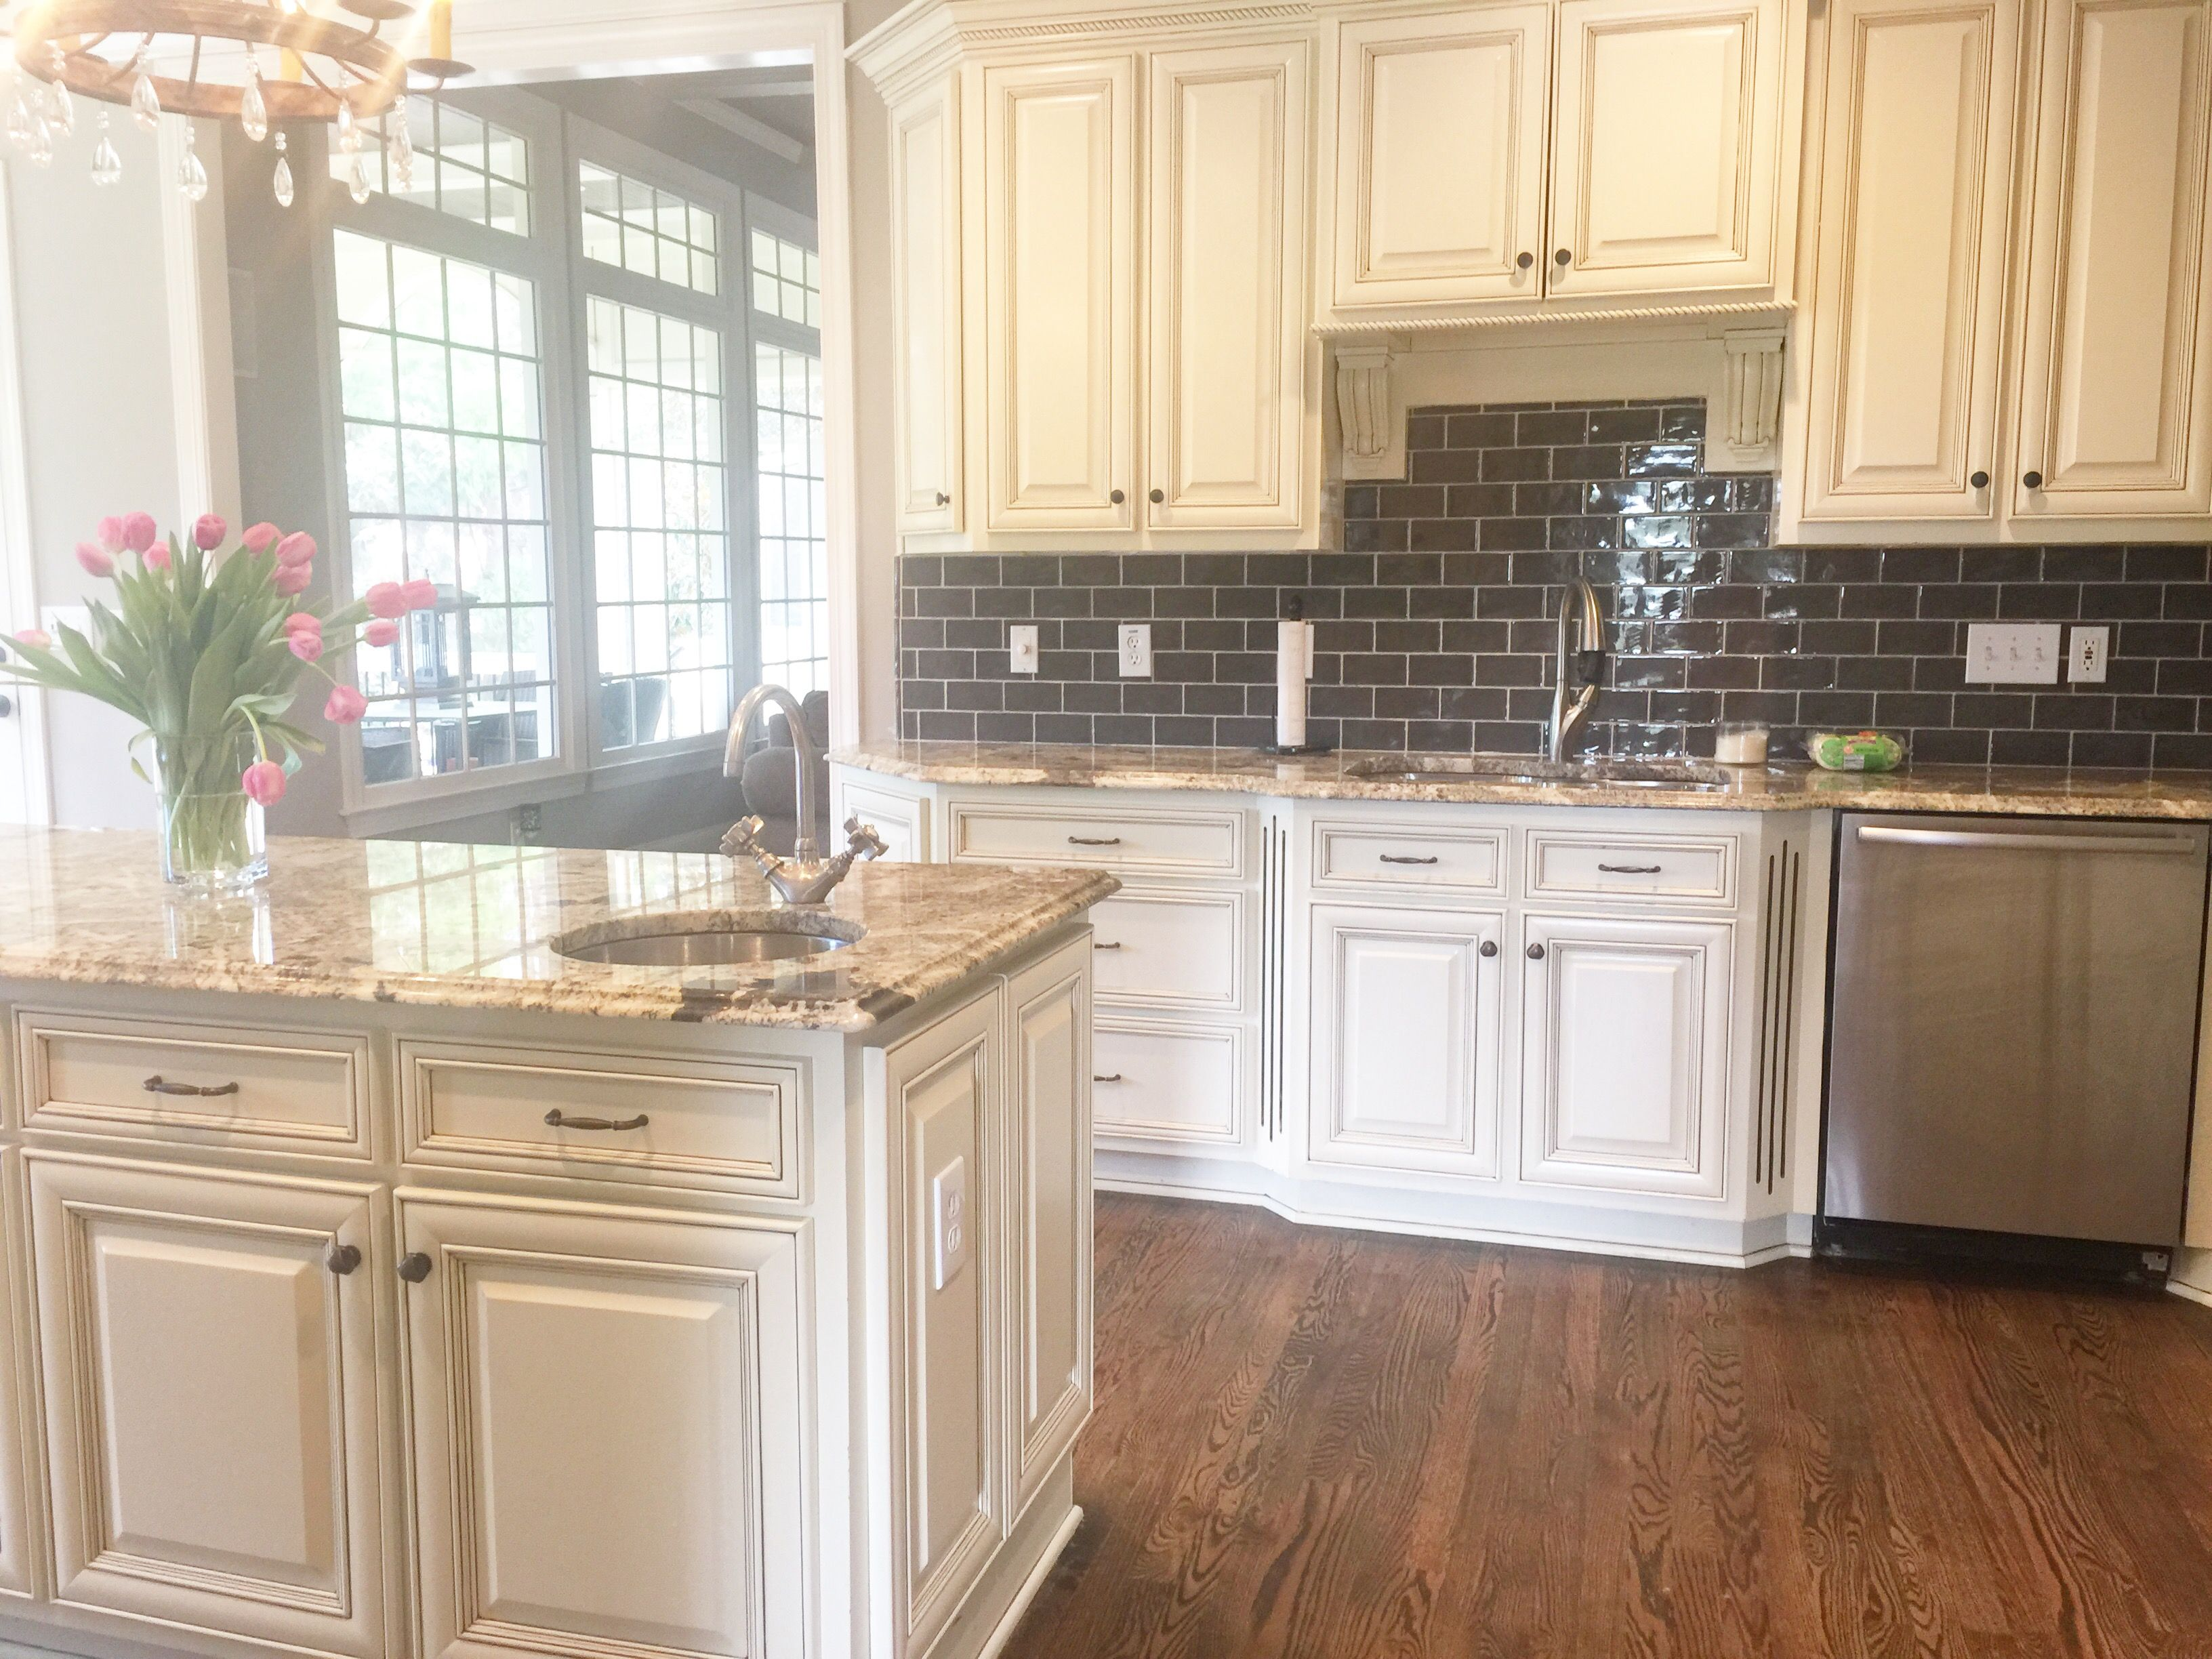 Cream Cabinets With Dark Backsplash